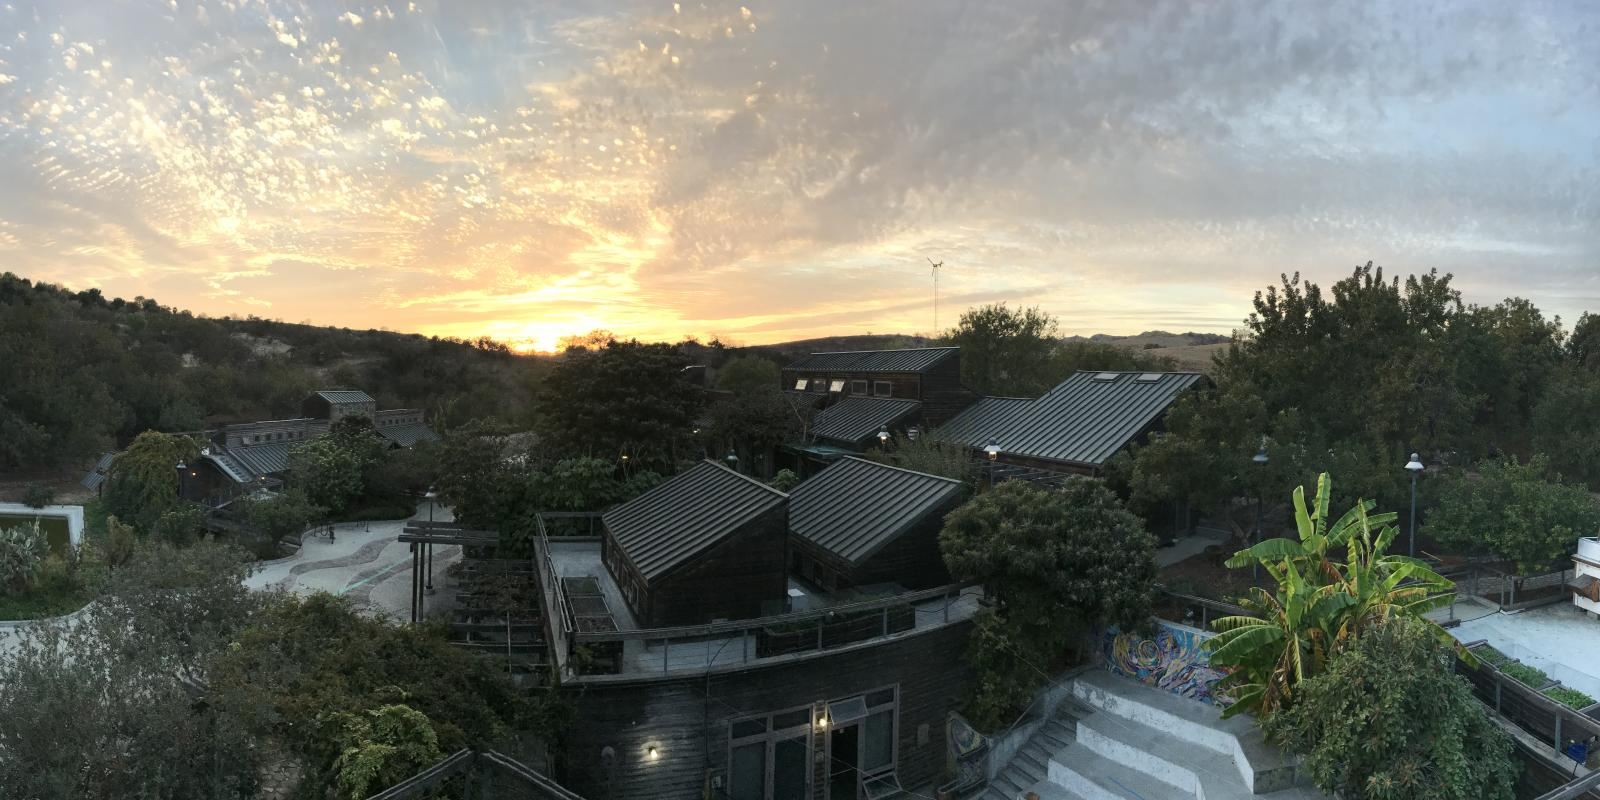 Sunset view of the Lyle Center for Regenerative Studies